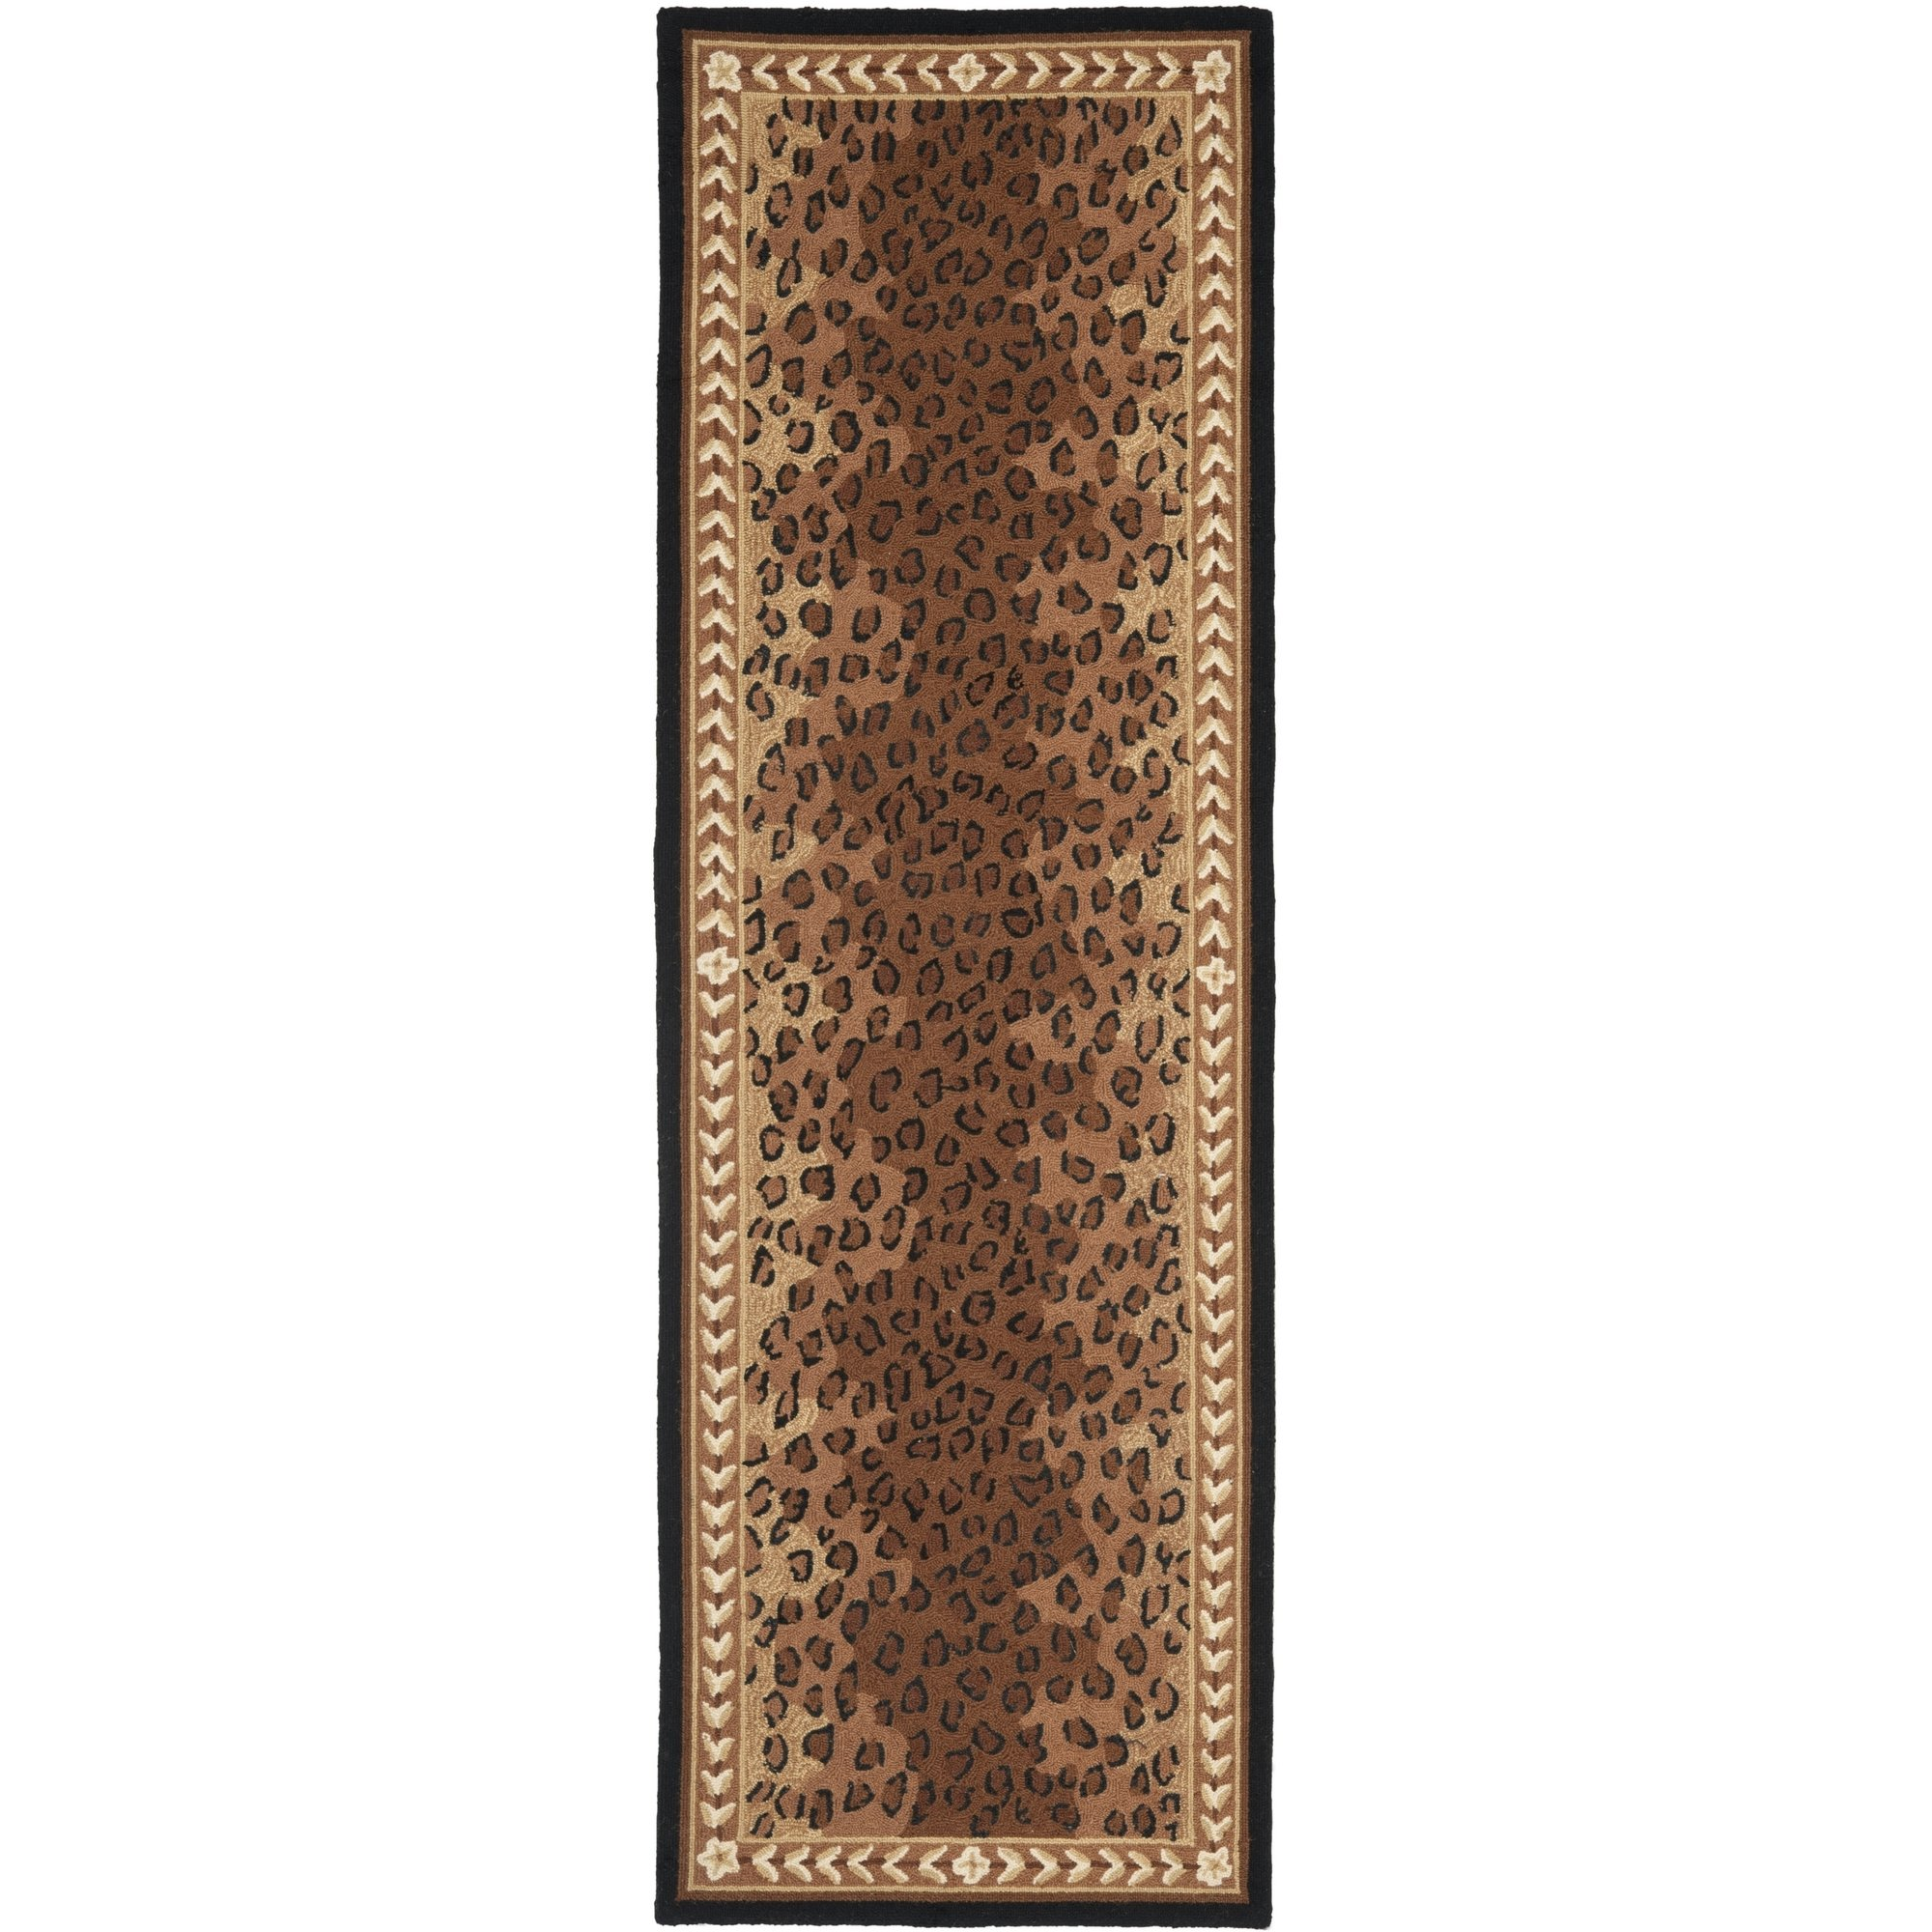 Safavieh Chelsea Collection HK15A Hand-Hooked Black and Brown Premium Wool Runner (2'6'' x 8')